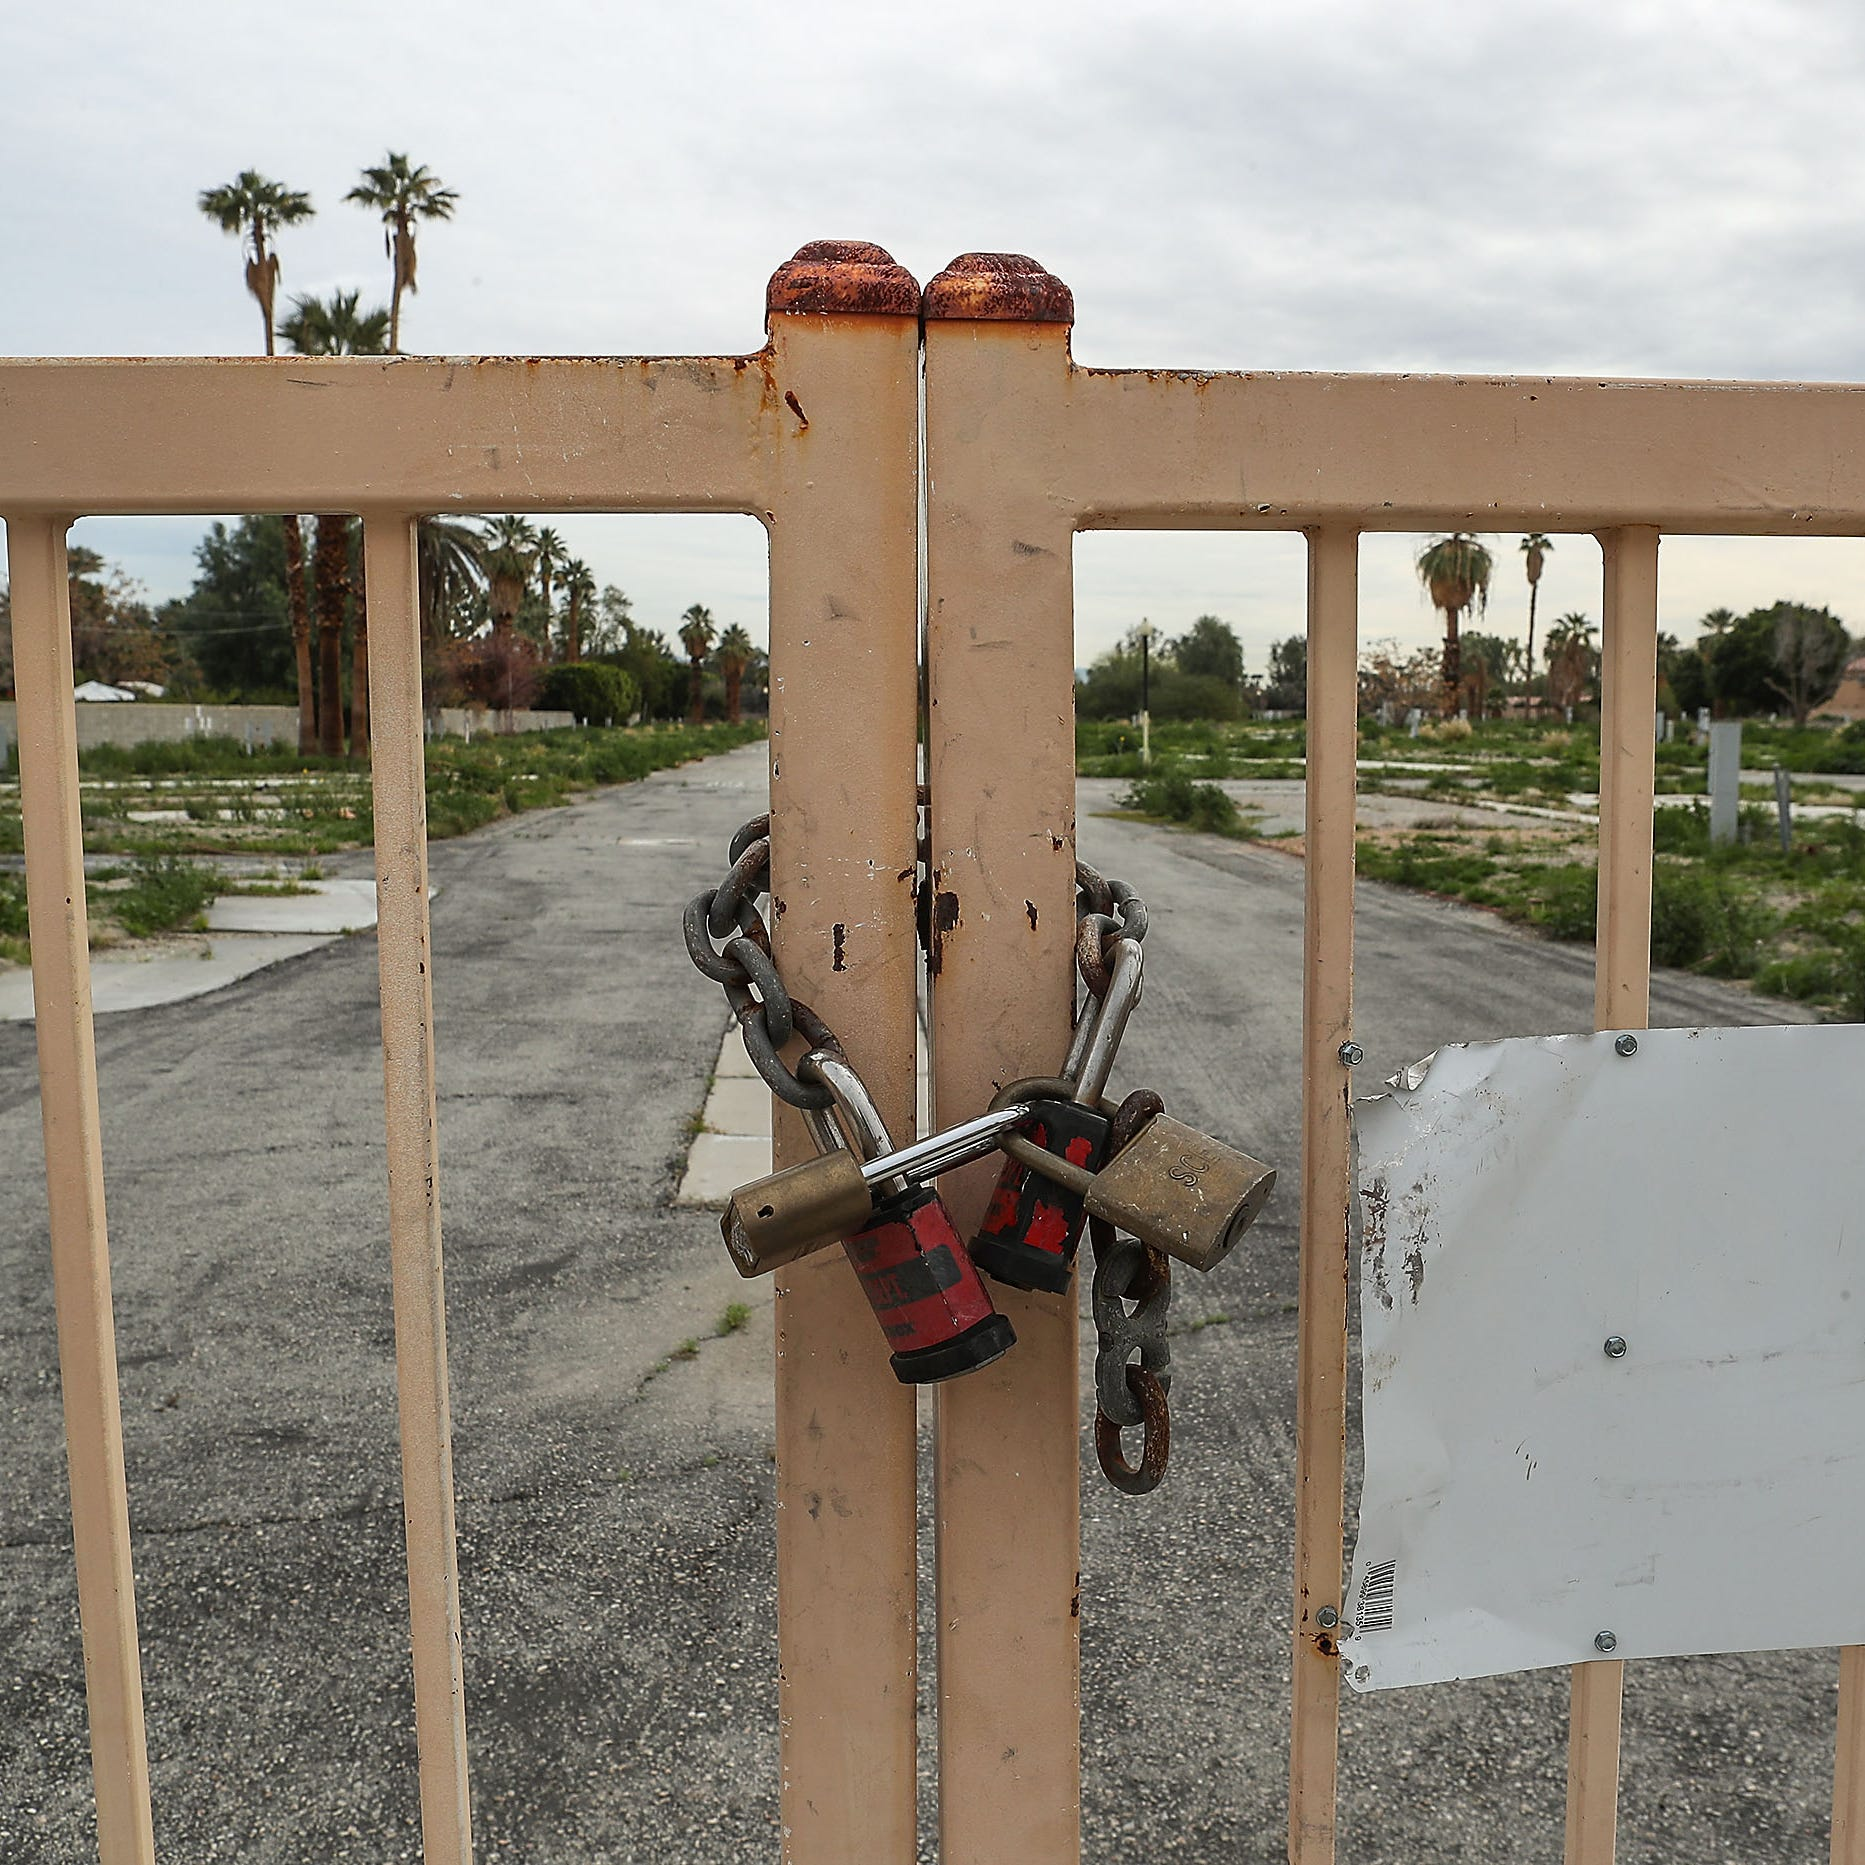 A now-vacant mobile home park has cost Rancho Mirage $11 million over the past ten years